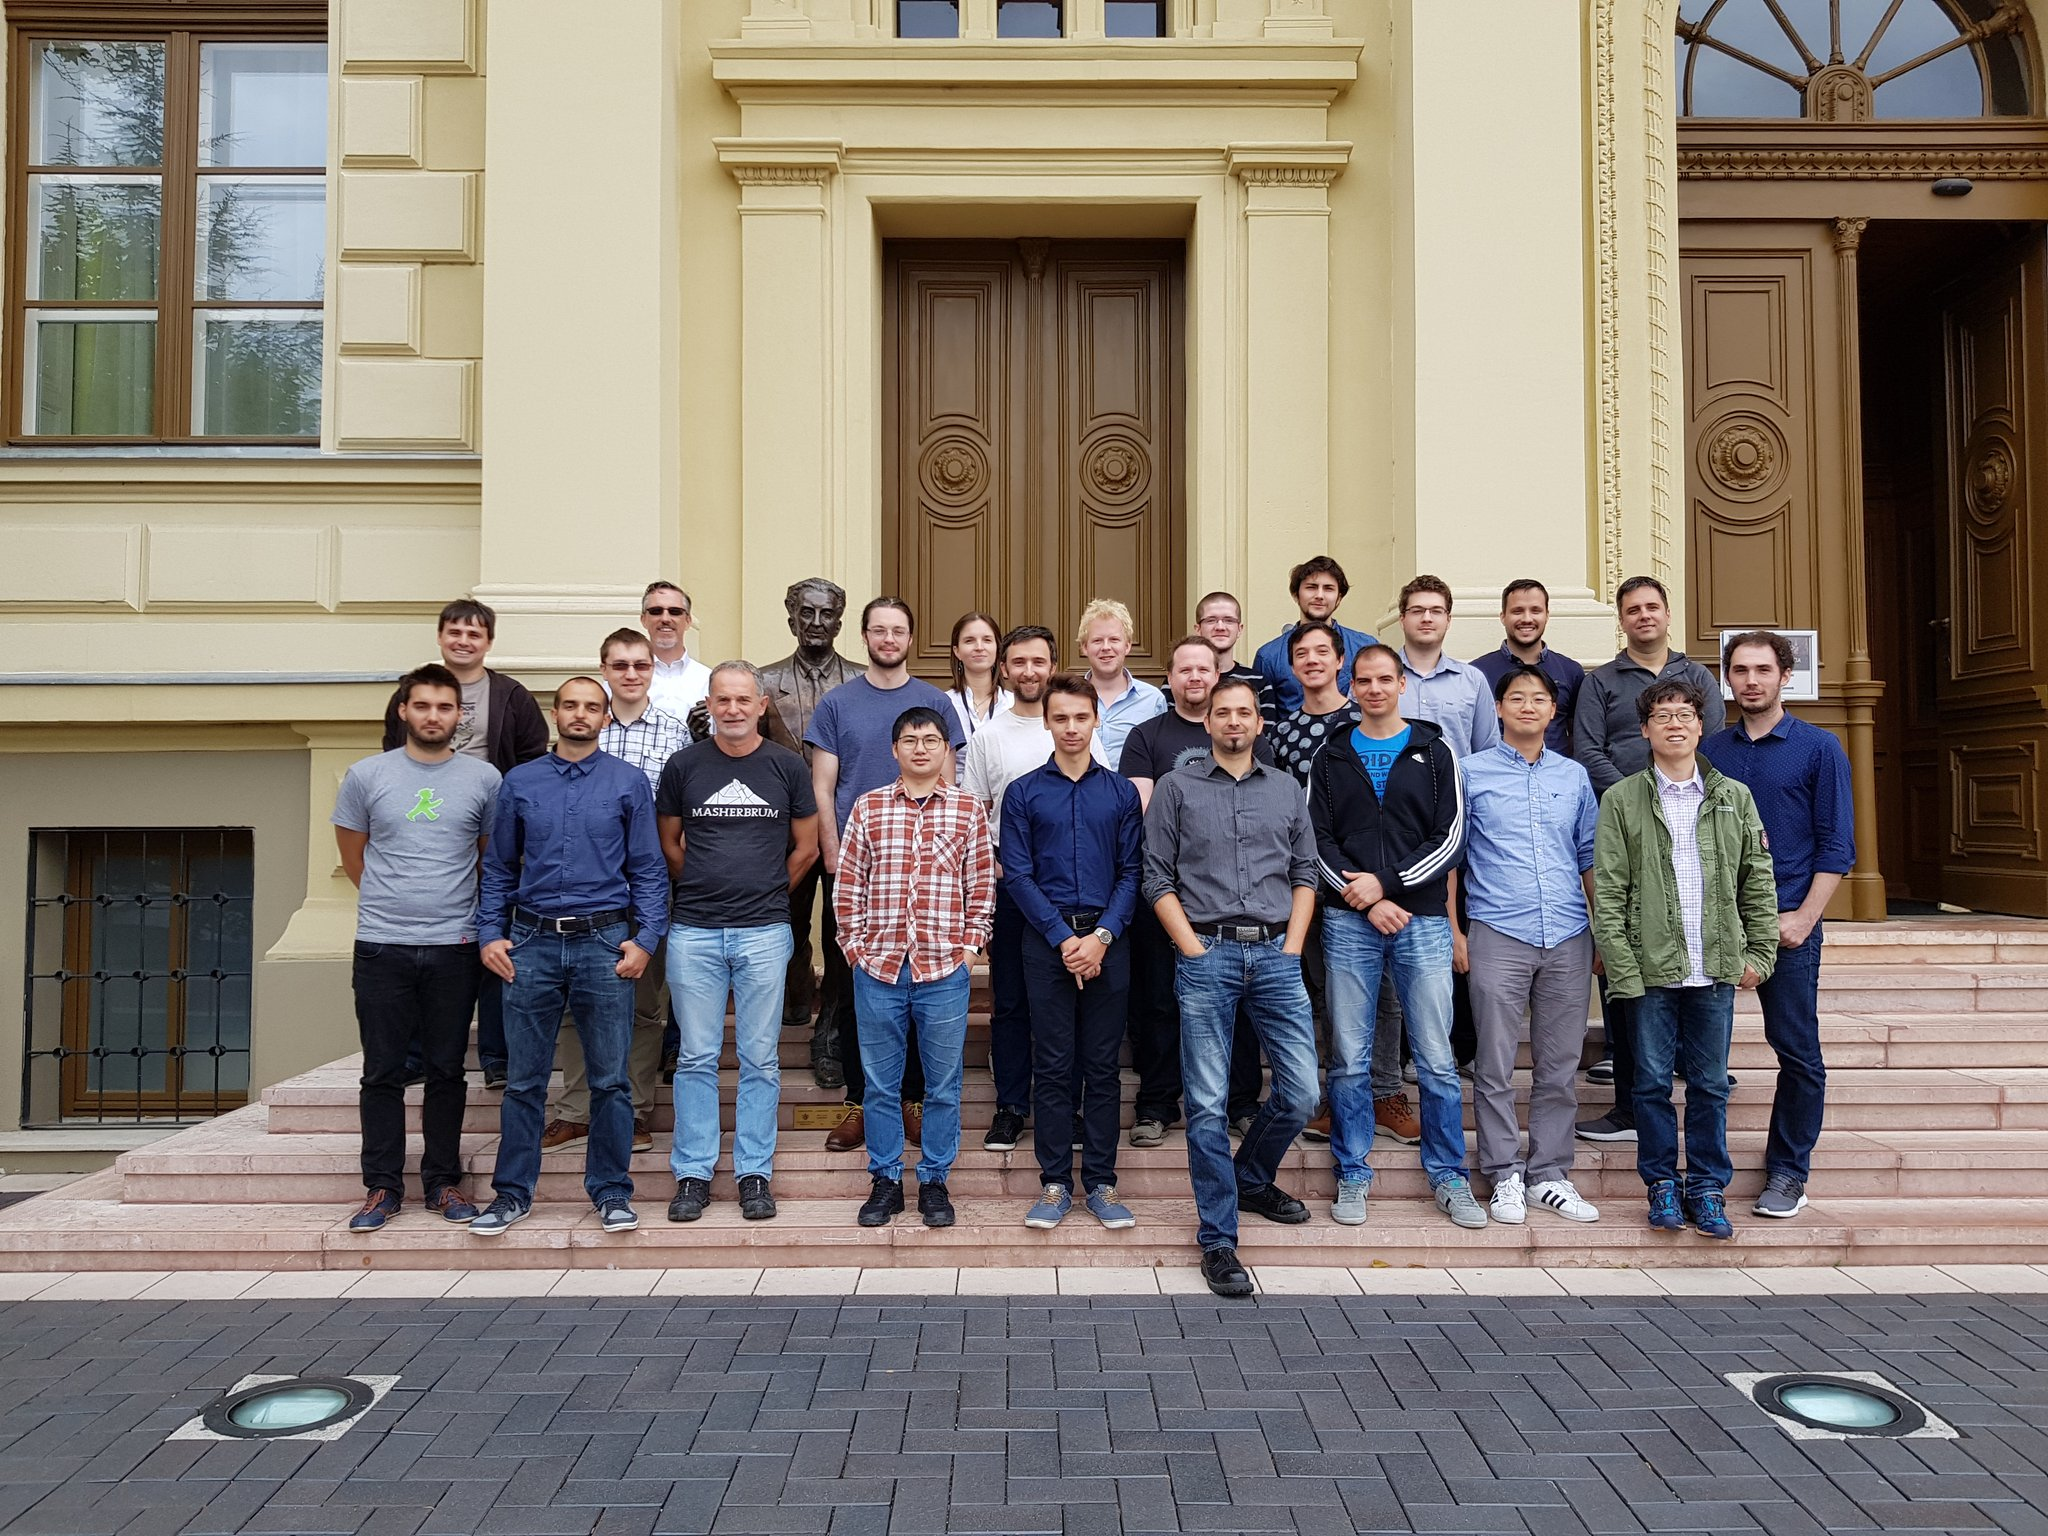 JerryScript workshop 2017 participants